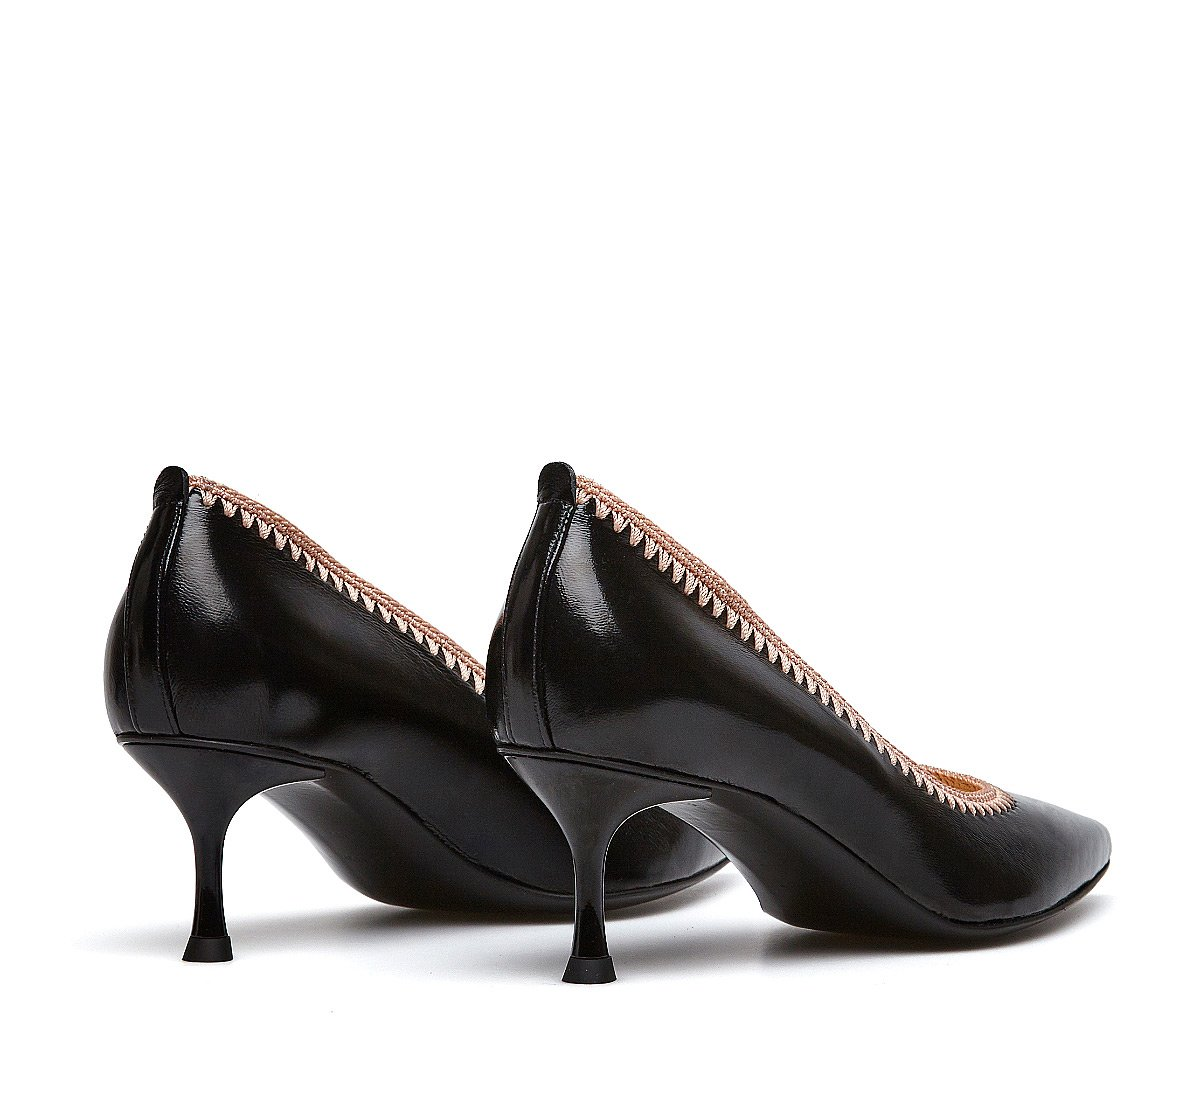 Soft calfskin pumps